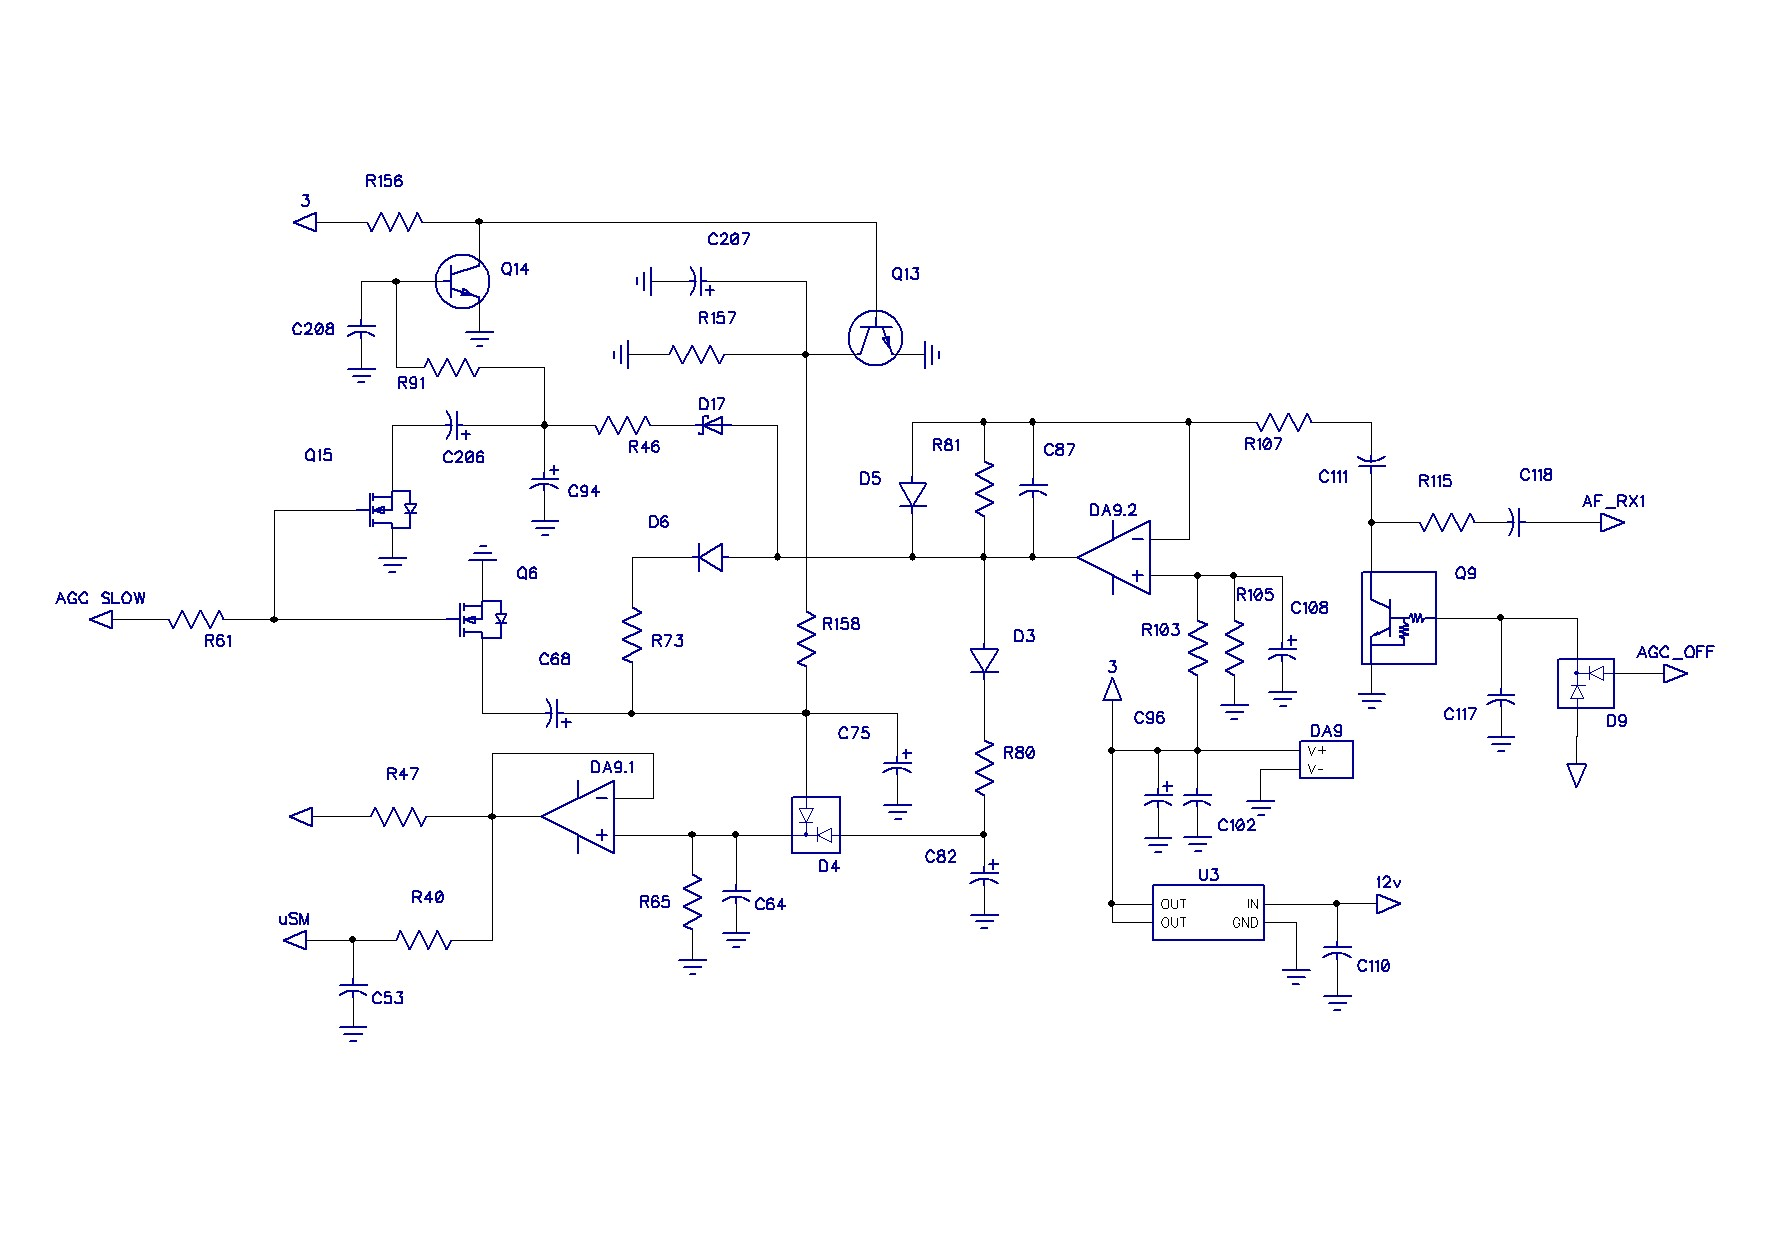 Qrpver Dc 3001 Circuit Diaghram Of Low Frequency Synthesizer After The Phase Shifter Signal Is Fed To An Amplifier With Adjustable Gain Which Set By Optocoupler Participating In